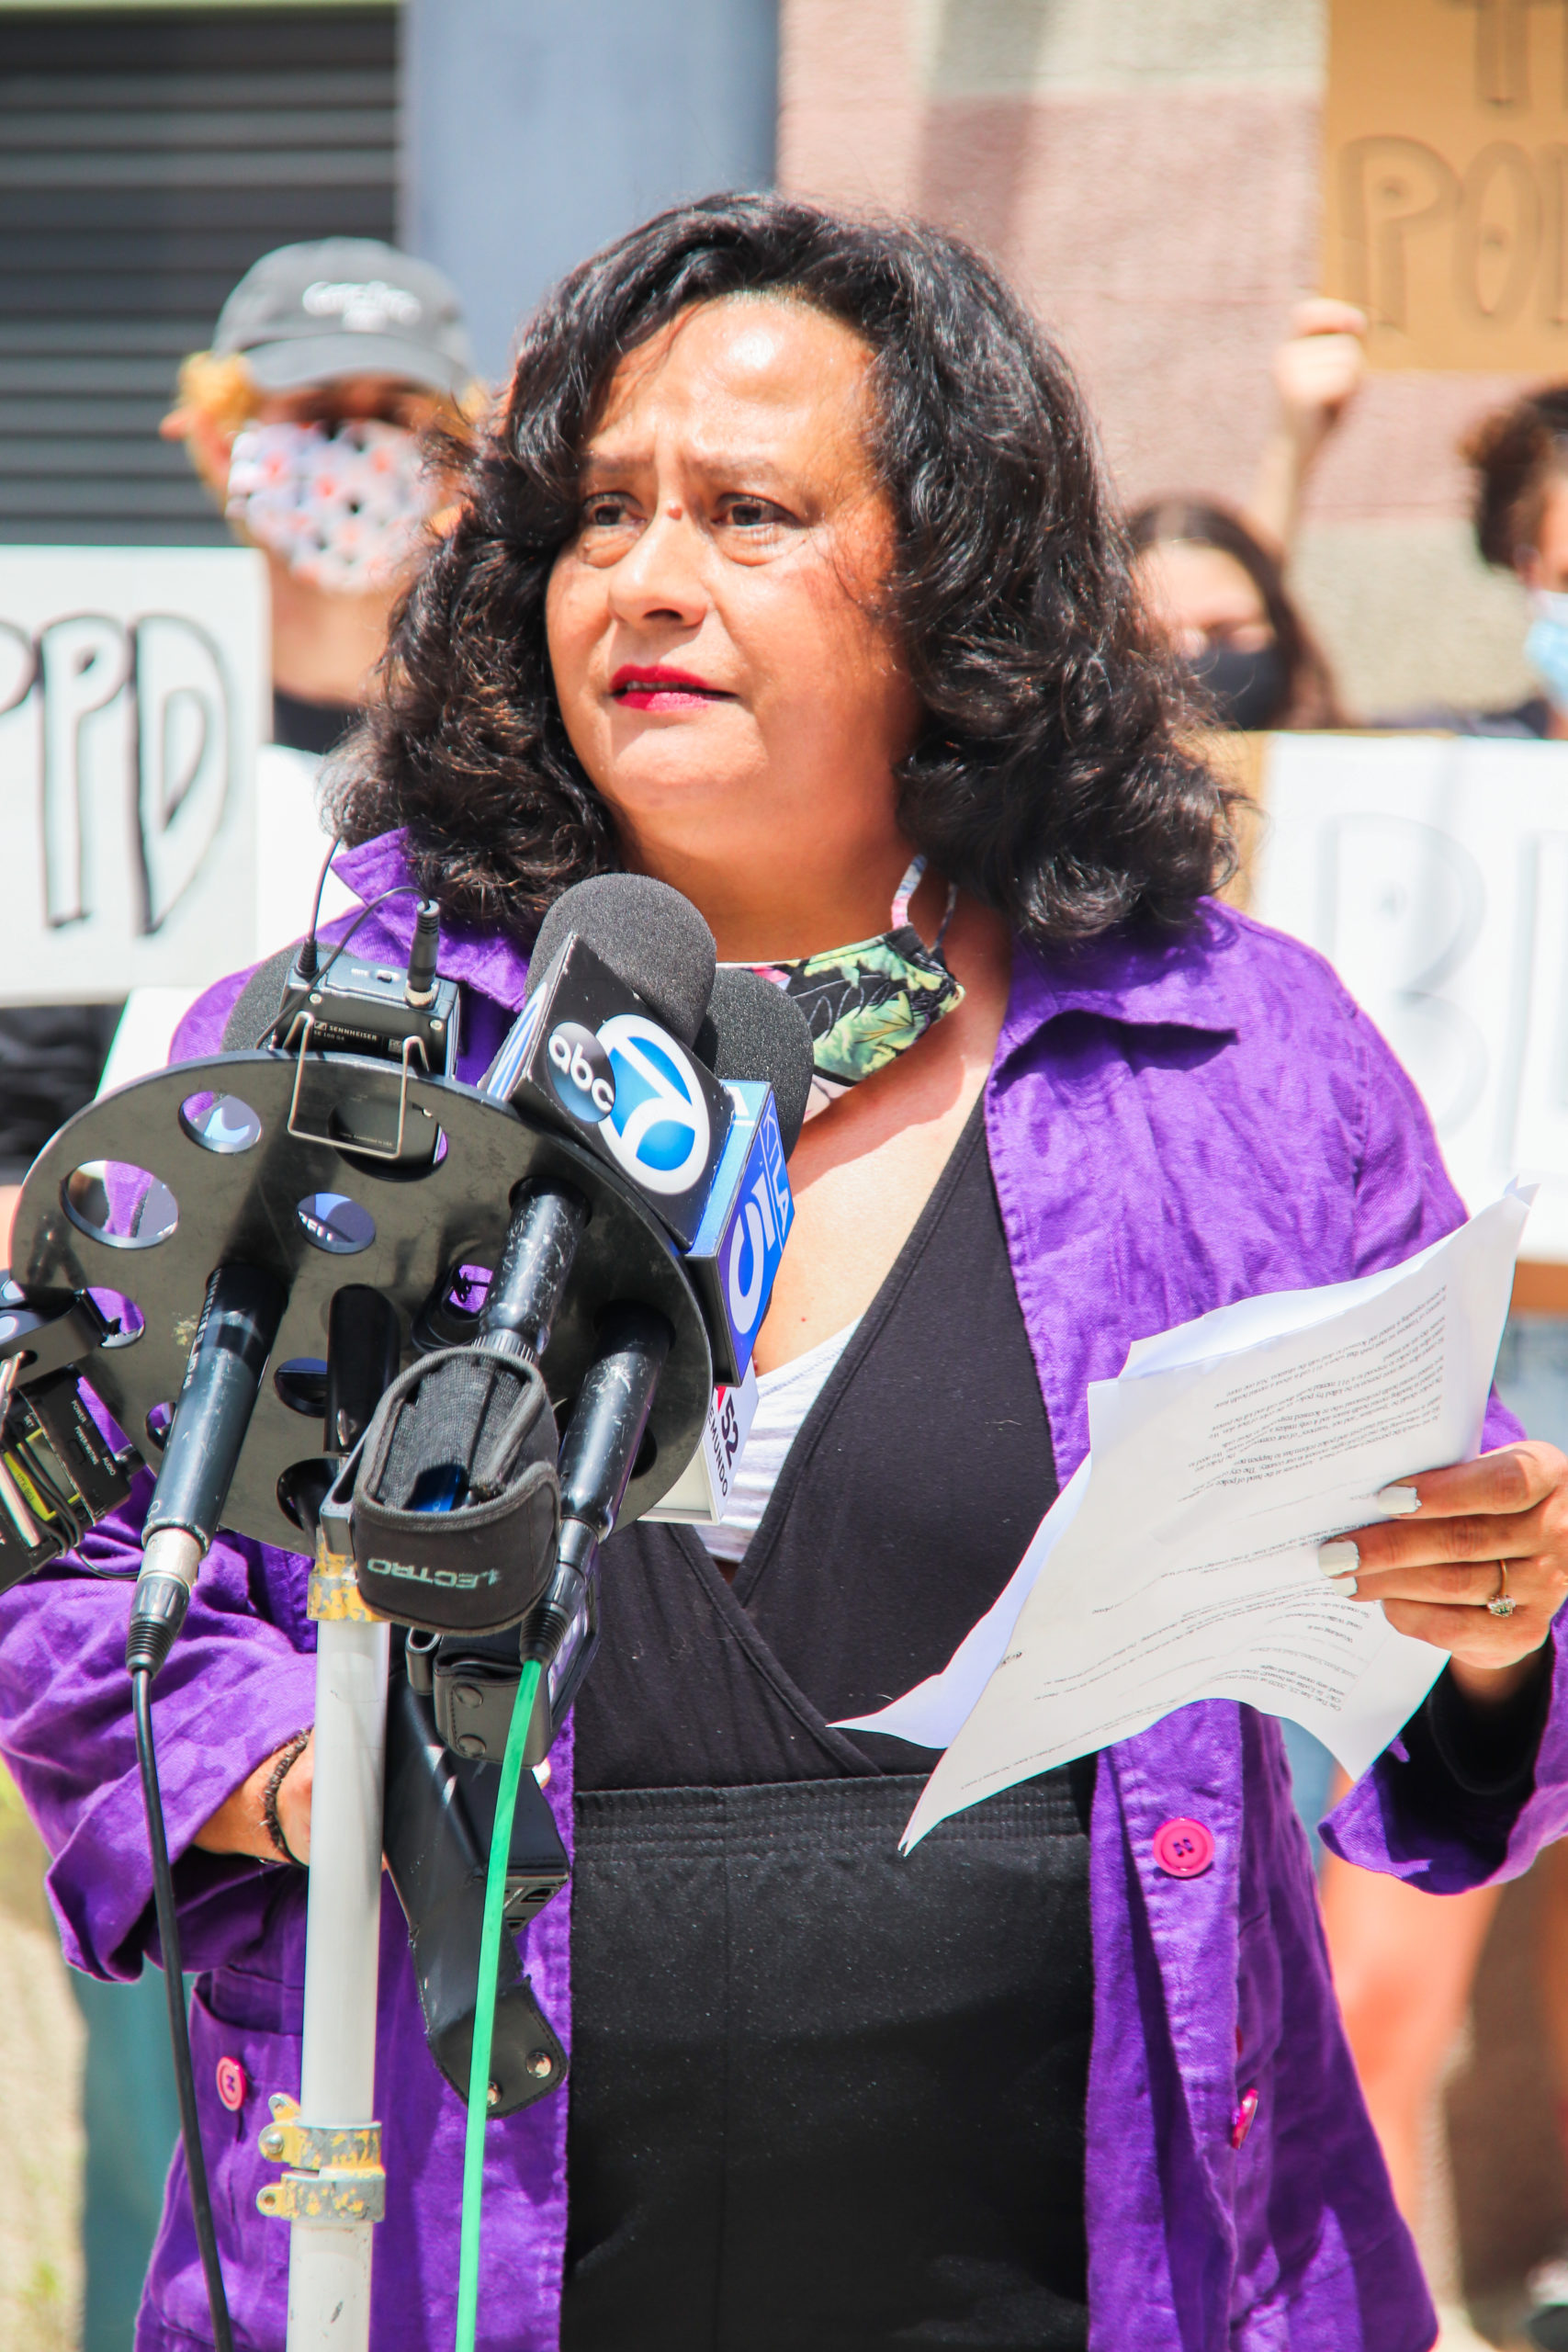 south-pasadena-news-06-24-2020-vanessa-marquez-police-shooting-wrongful-death-lawsuit-city-hall-31